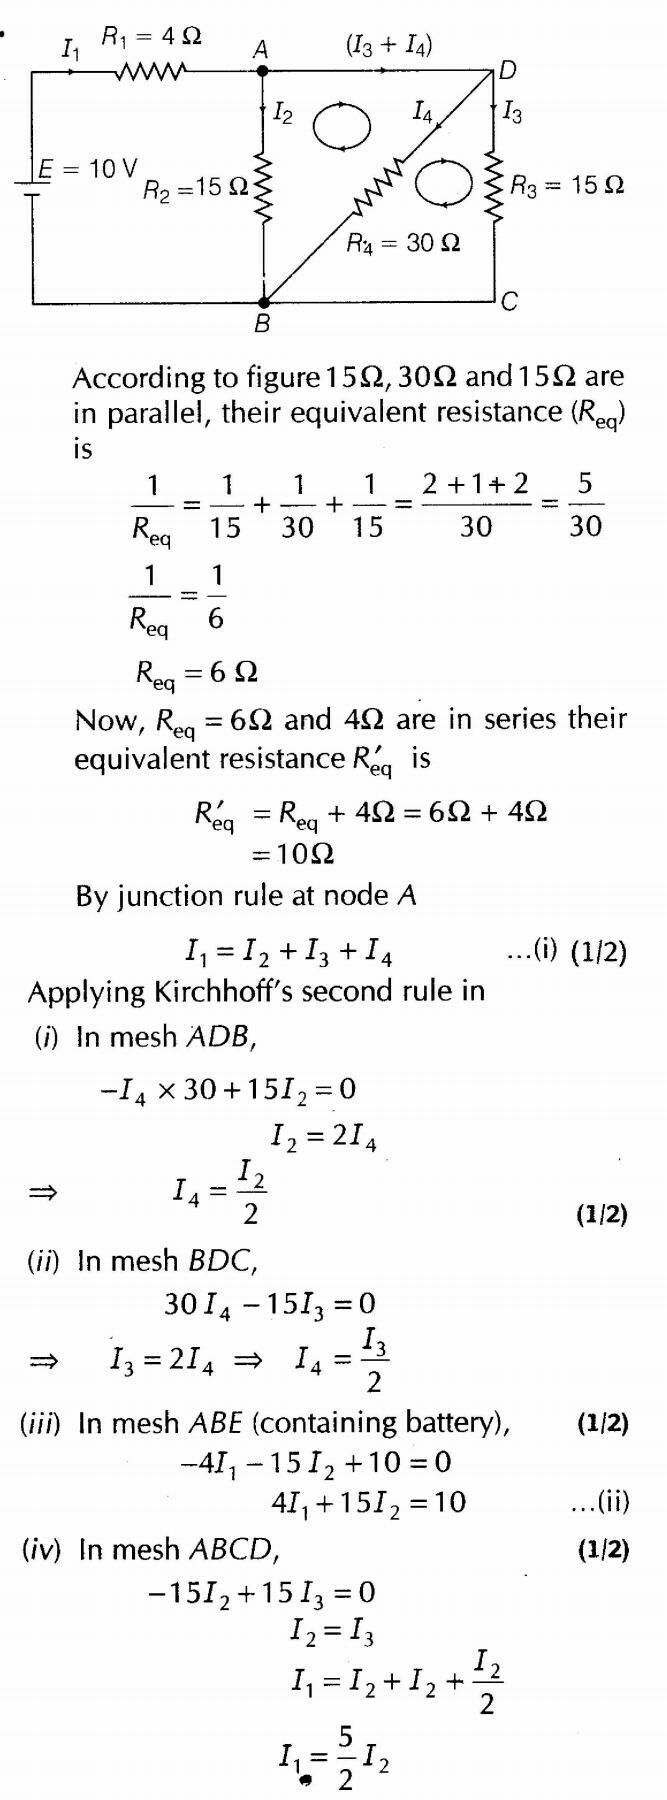 276 Best Fsica Images On Pinterest Mathematics Science And Knowledge English Drawing Shear Force Bending Moment Diagrams Youtube Circuit Analysis